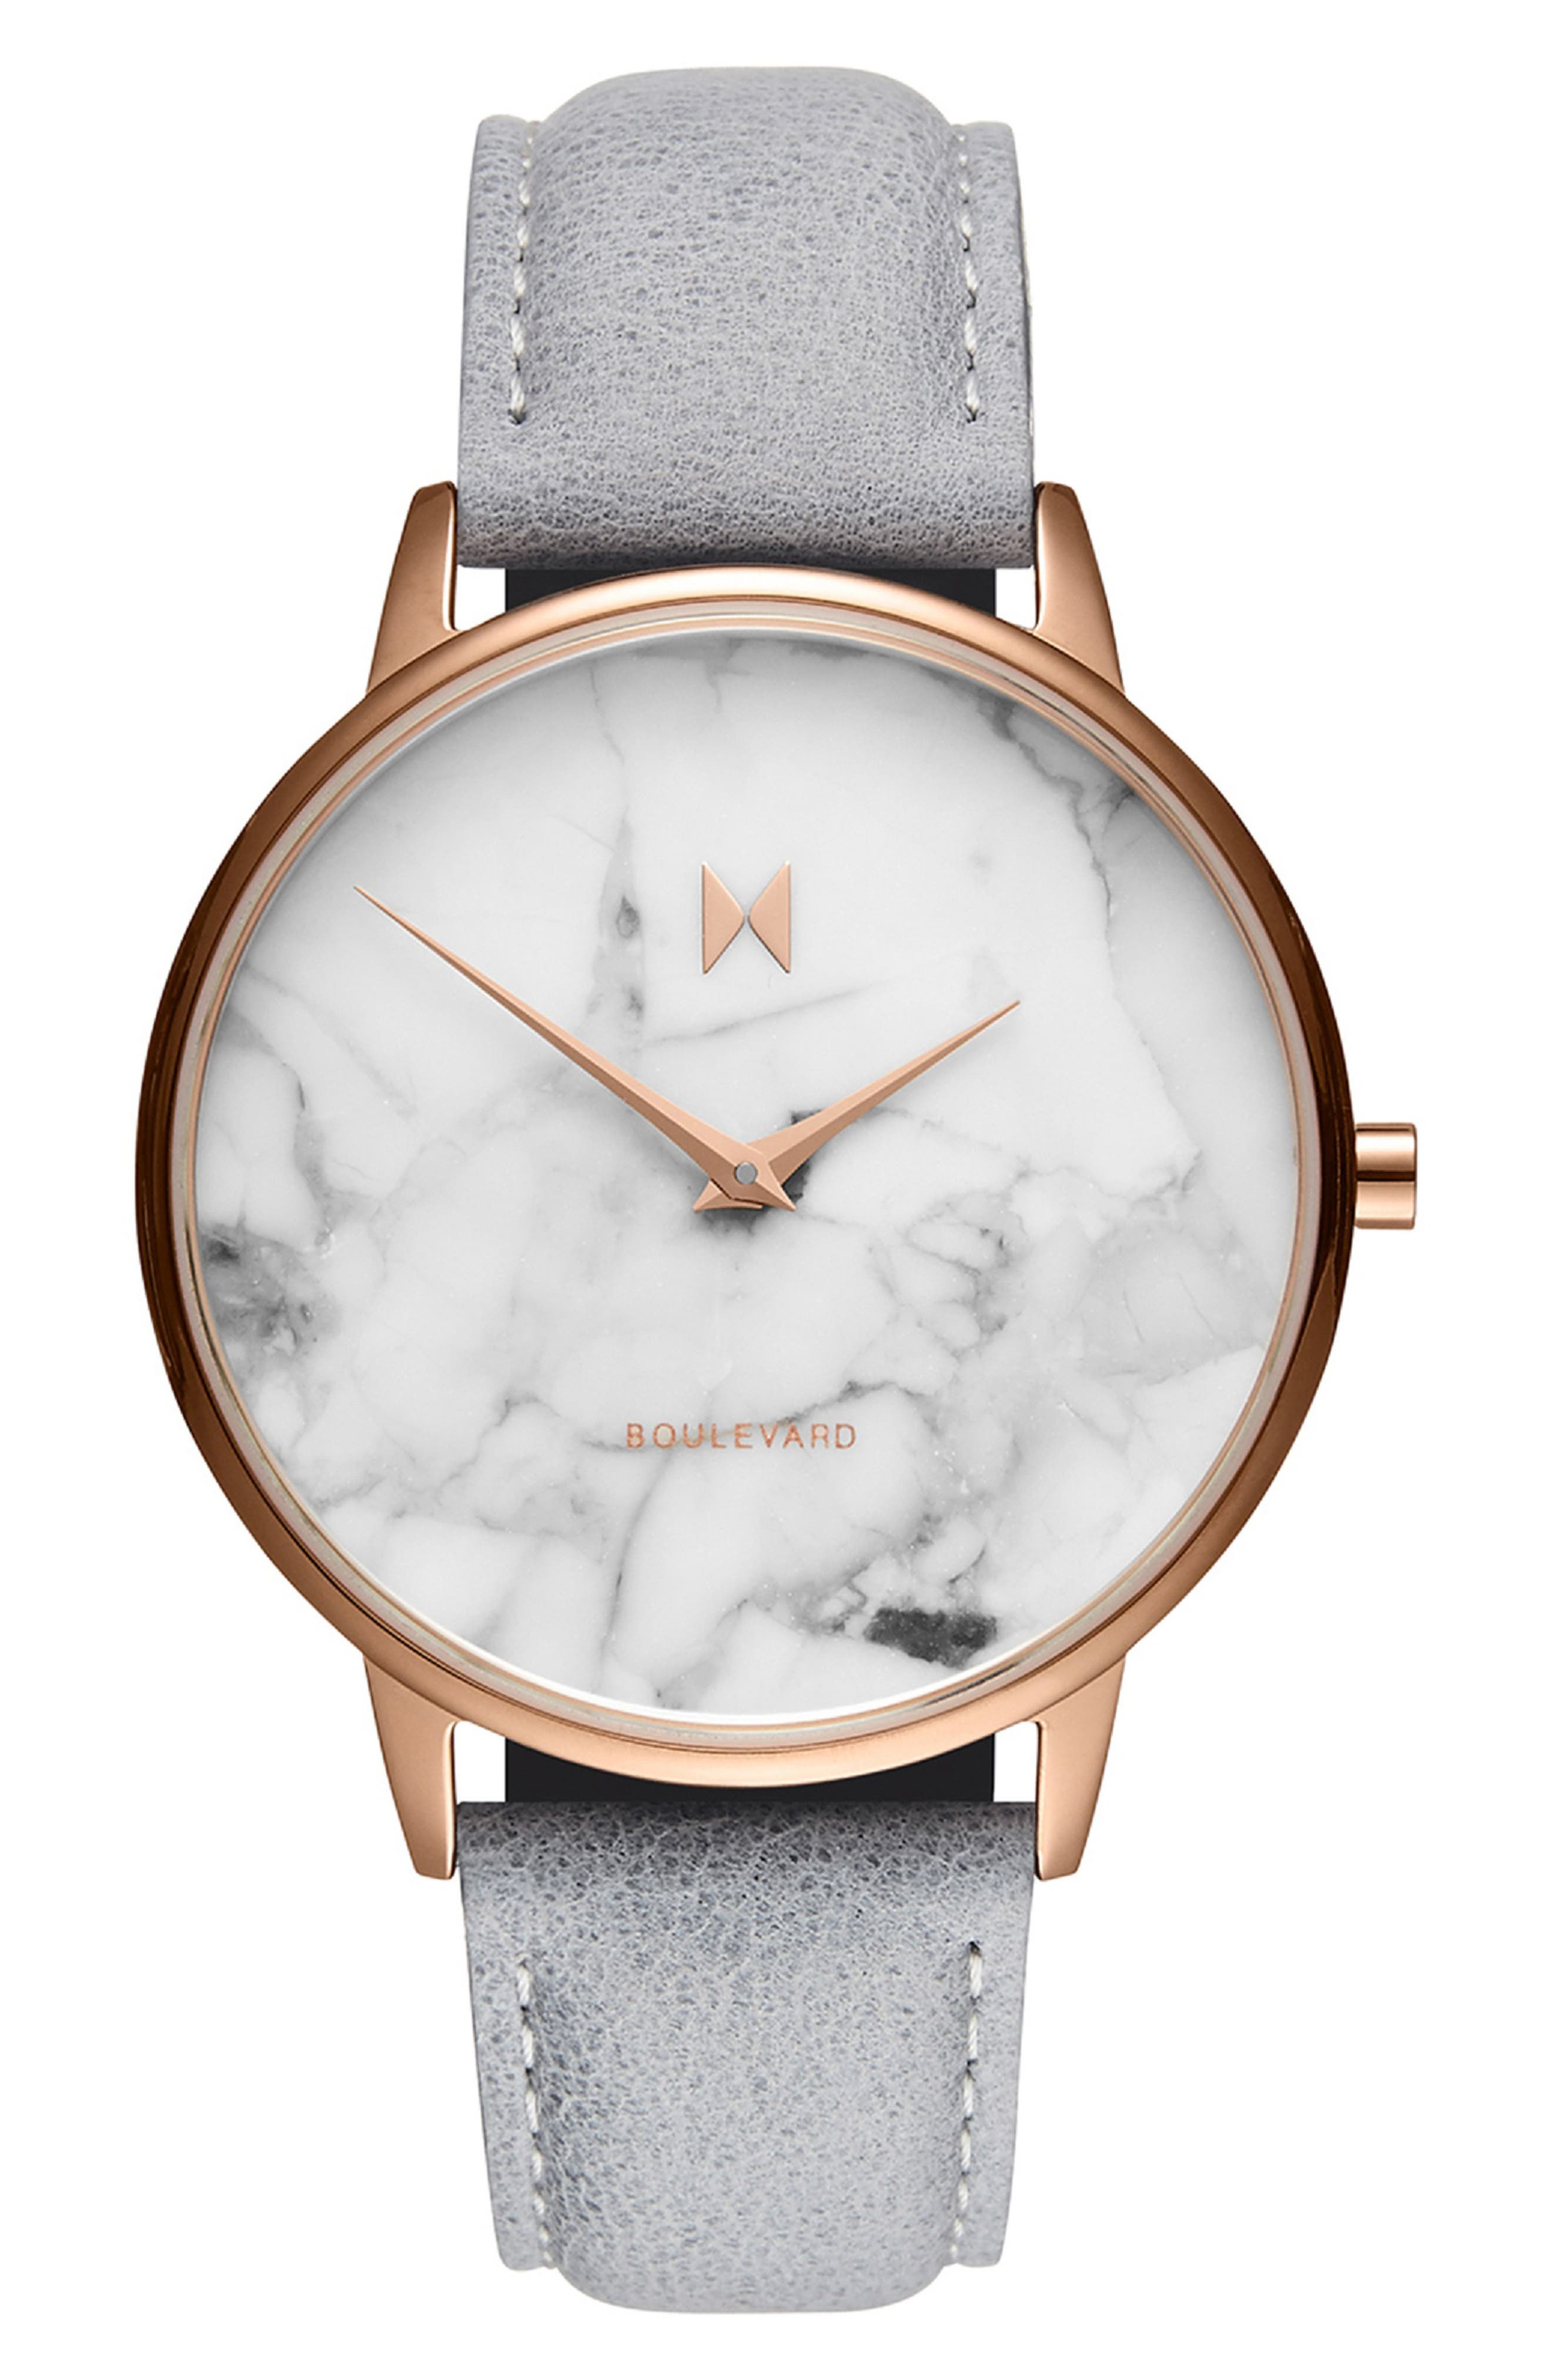 Boulevard Leather Strap Watch, 38mm,                             Main thumbnail 1, color,                             GREY/ WHITE MARBLE/ ROSE GOLD